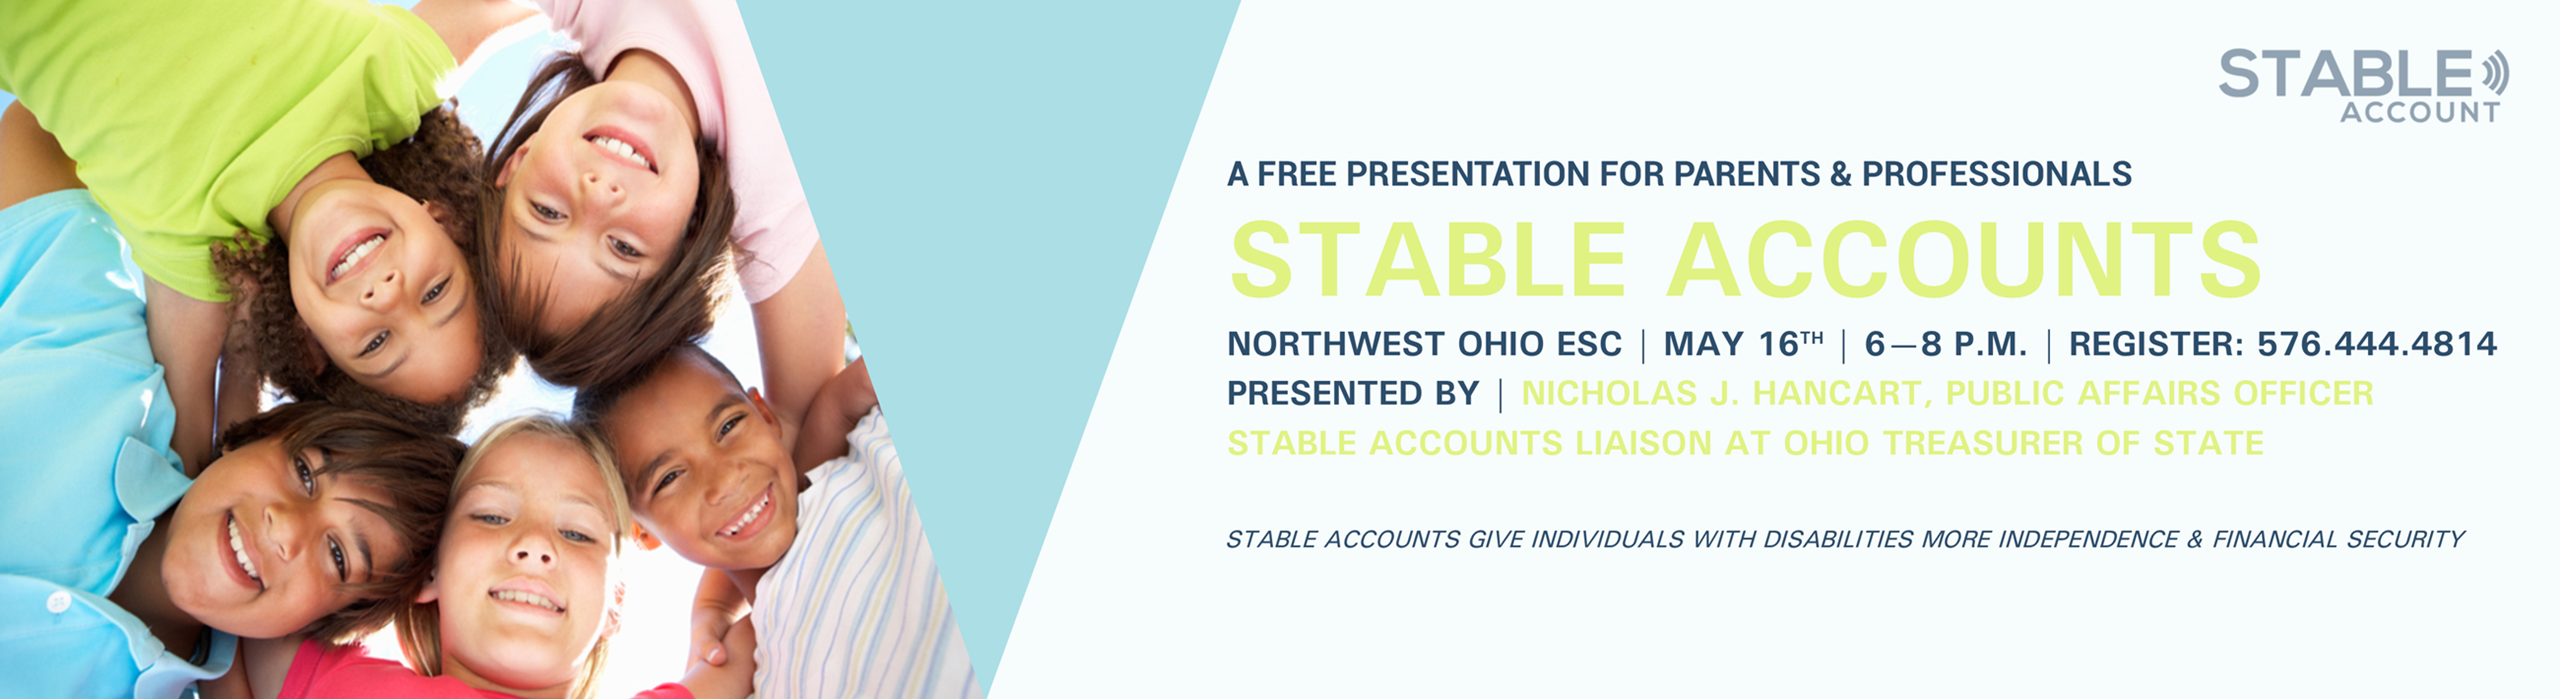 Invitation to Stable Accounts presentation